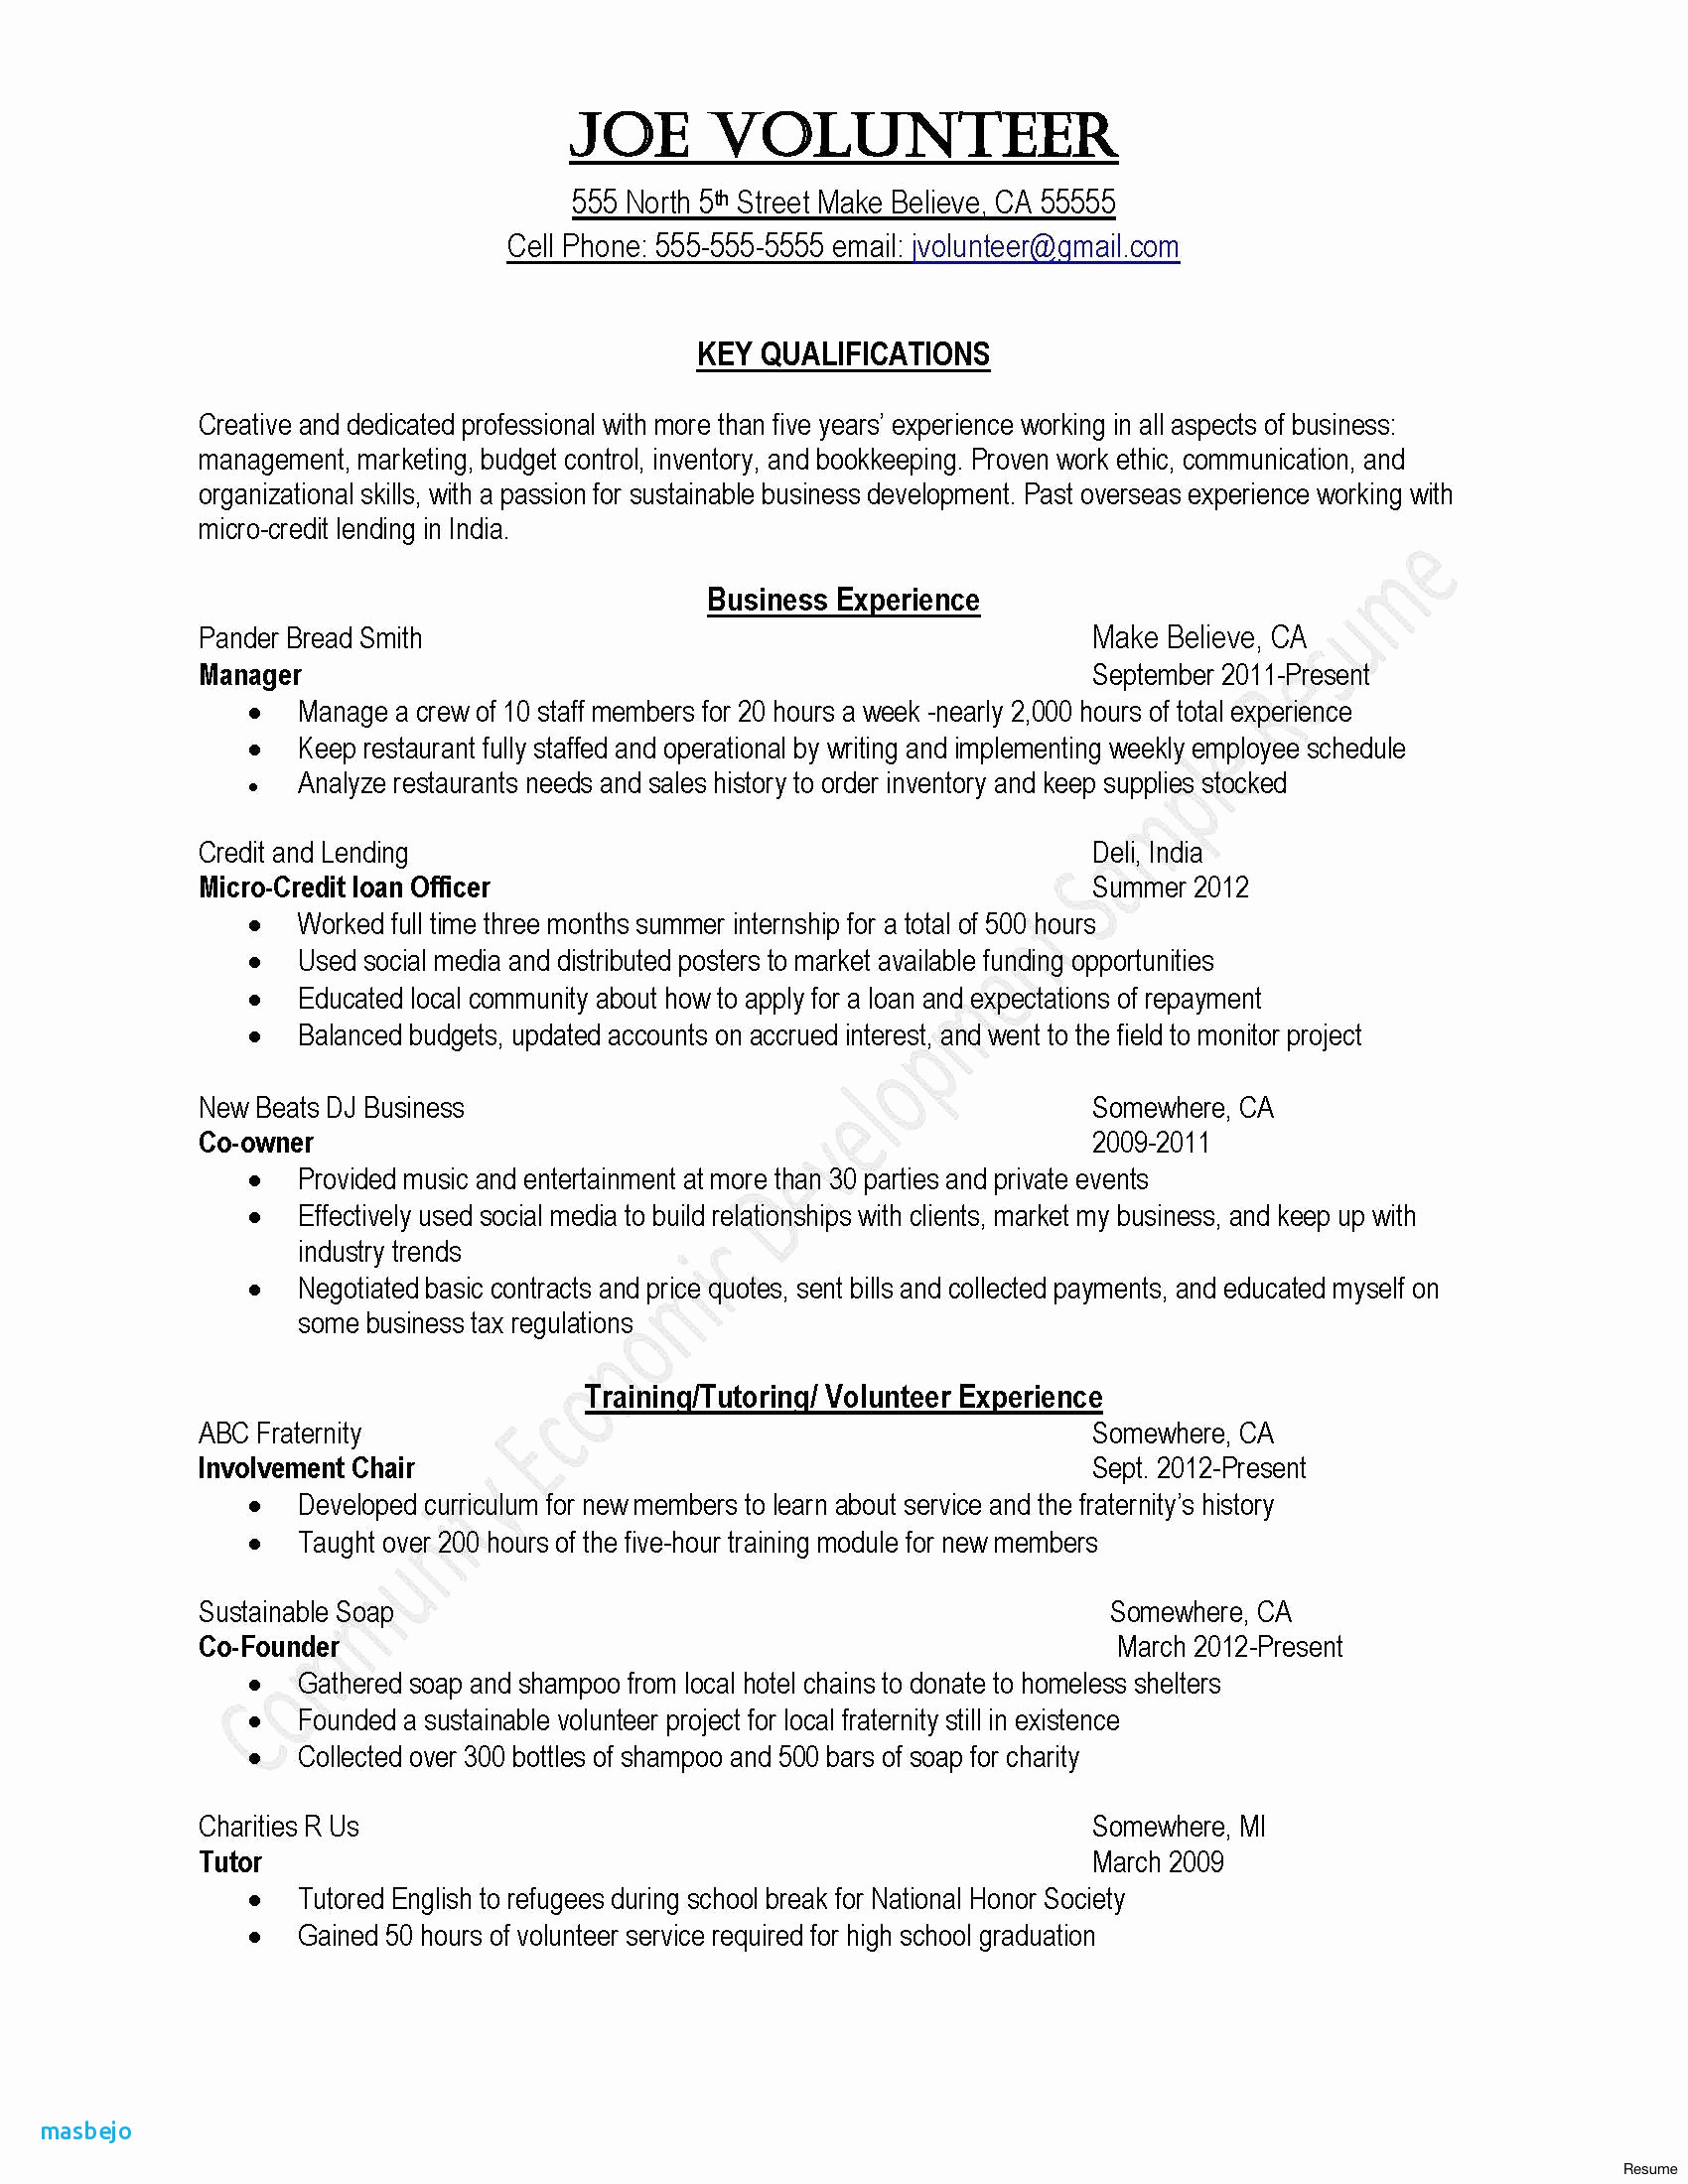 Resume for Police Officer - Loan Ficer Resume Examples Graphic Resume Templates New Resume